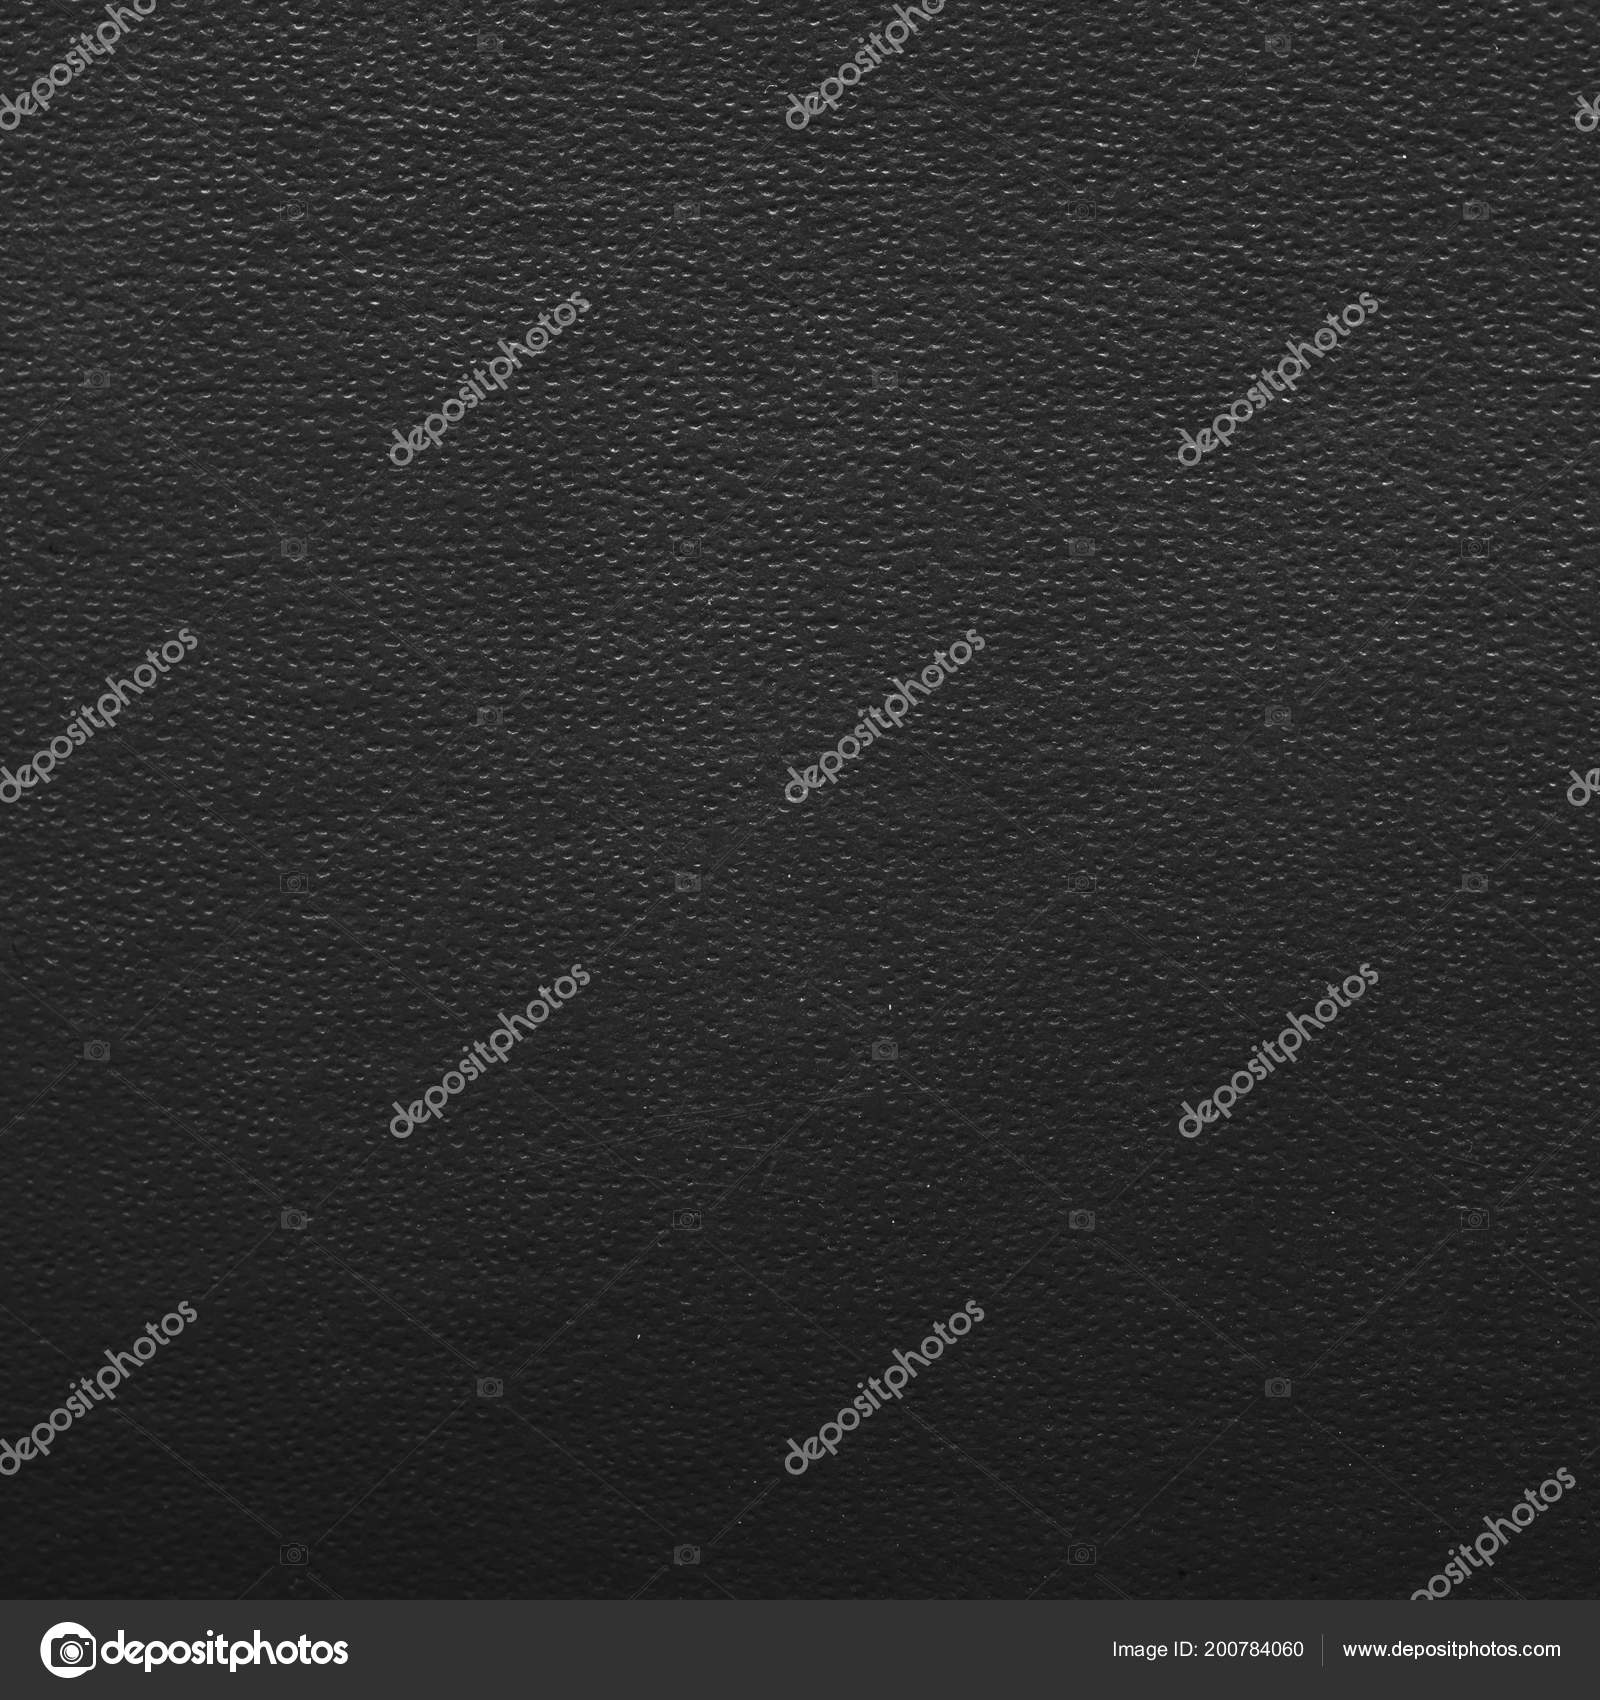 Abstract Seamless Black Leather Texture